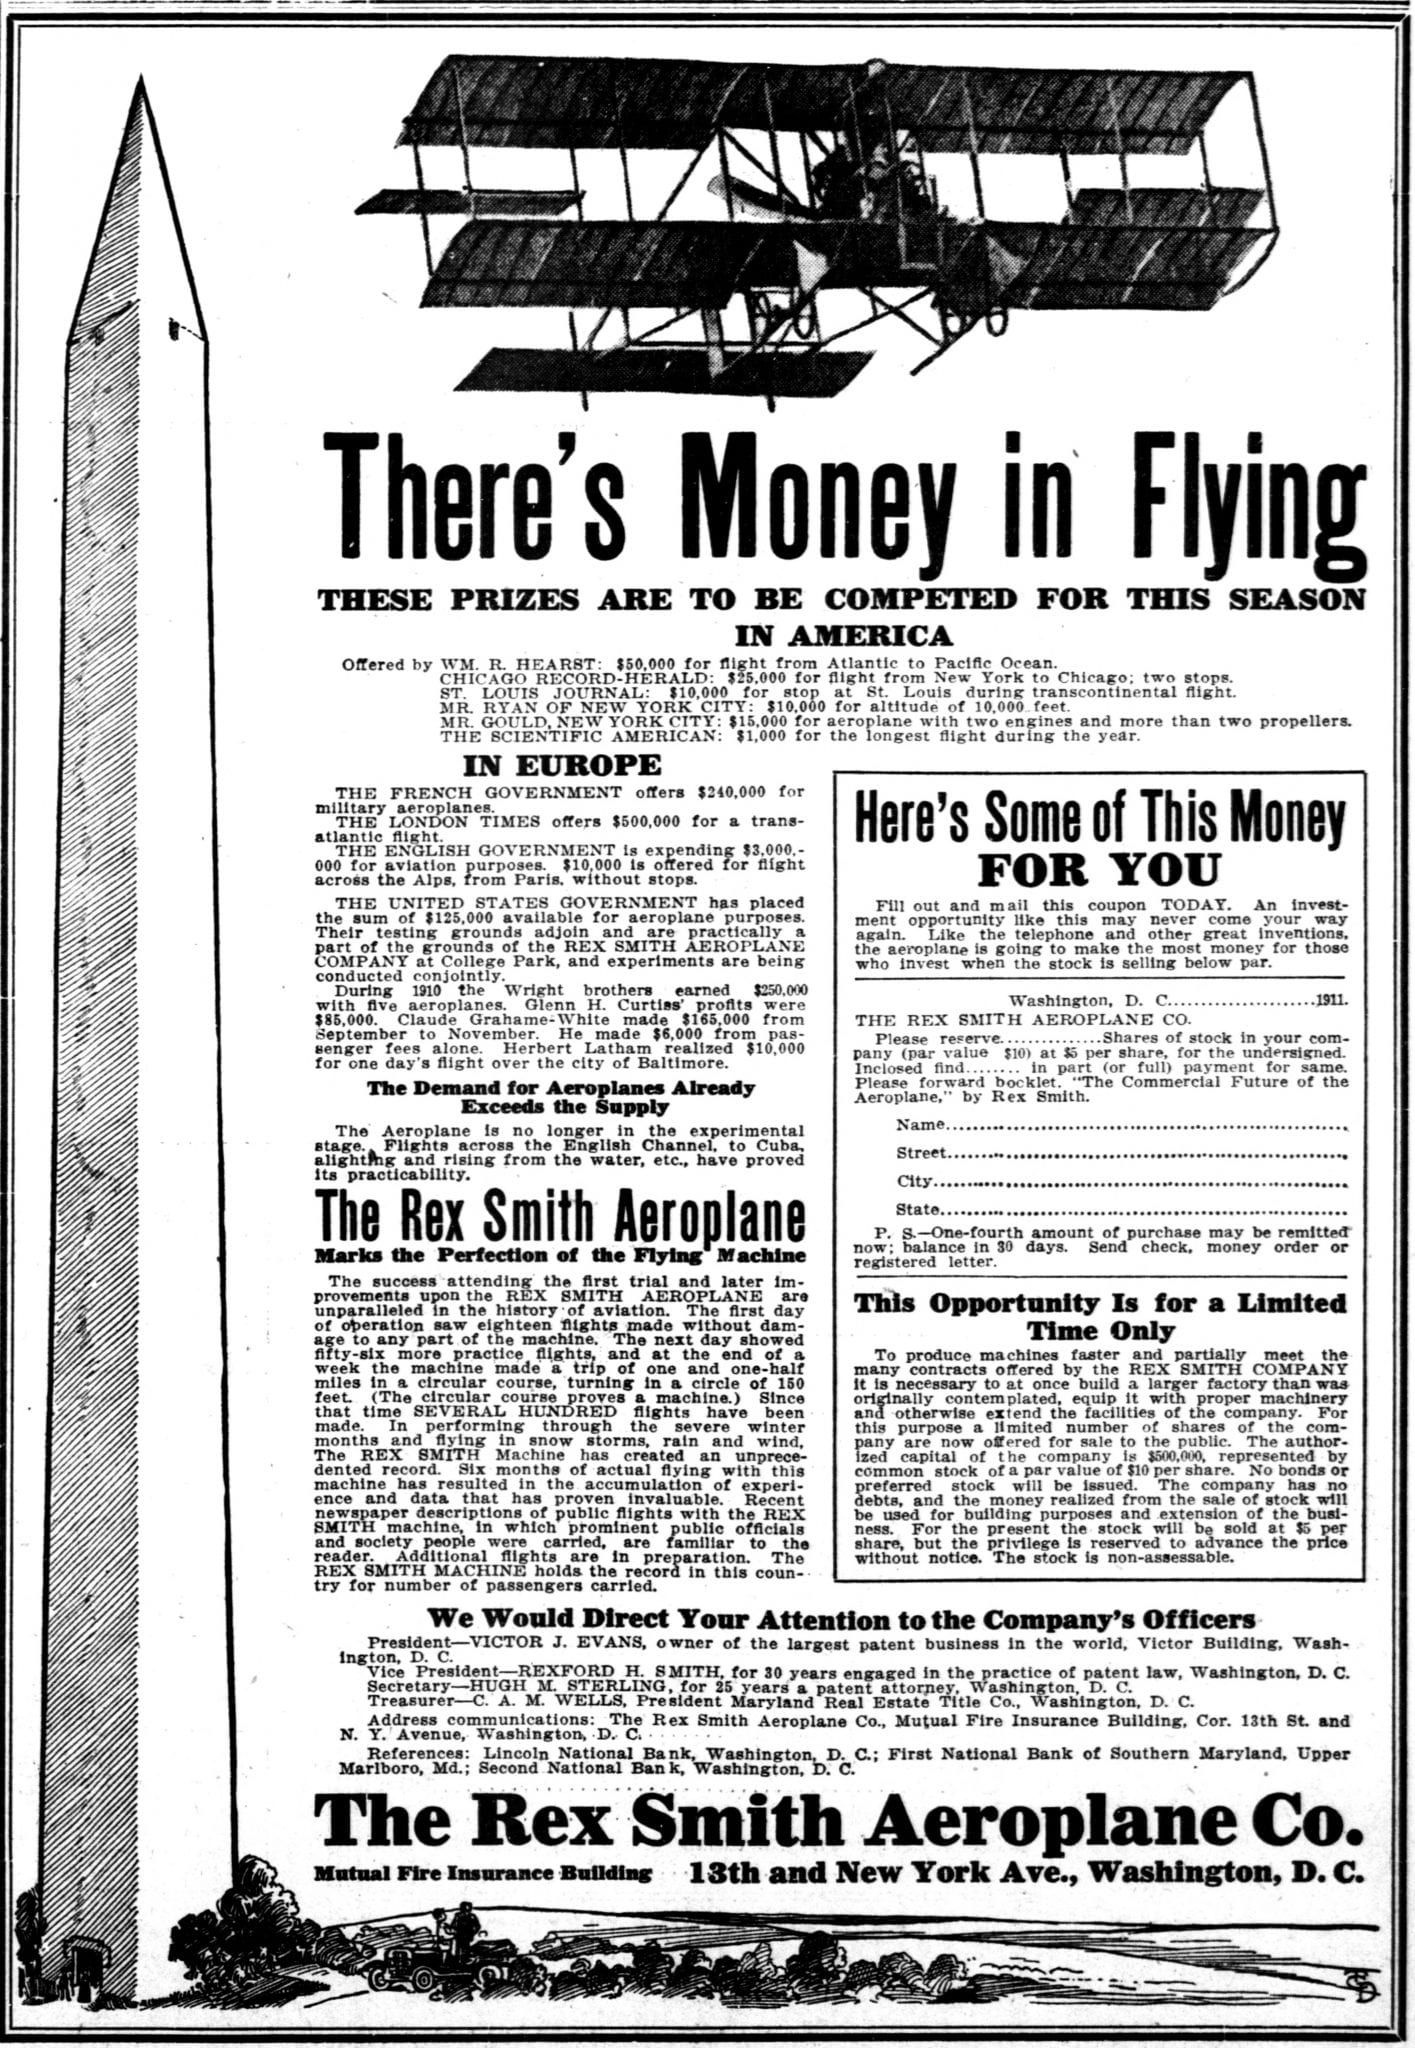 $50,000 Award to Fly Across America in 1911